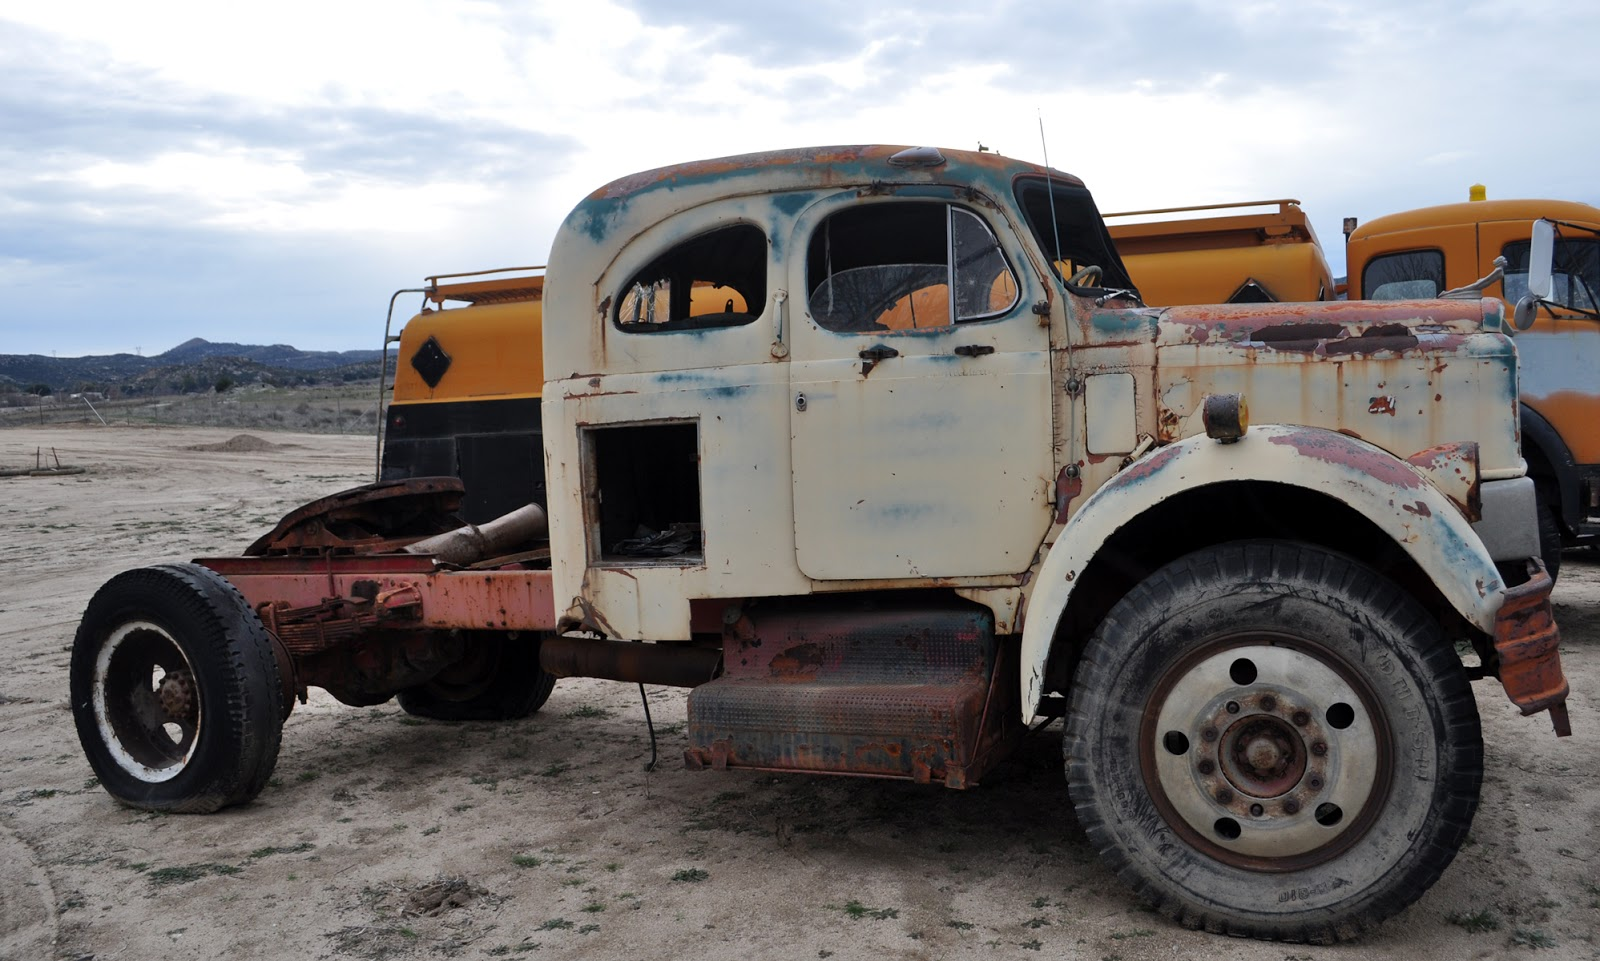 Tucker sno cat for sale craigslist - 1957 Reo Model A630 Sleeper Cab Showing The Design So Different Than Mack Or Peterbuilt